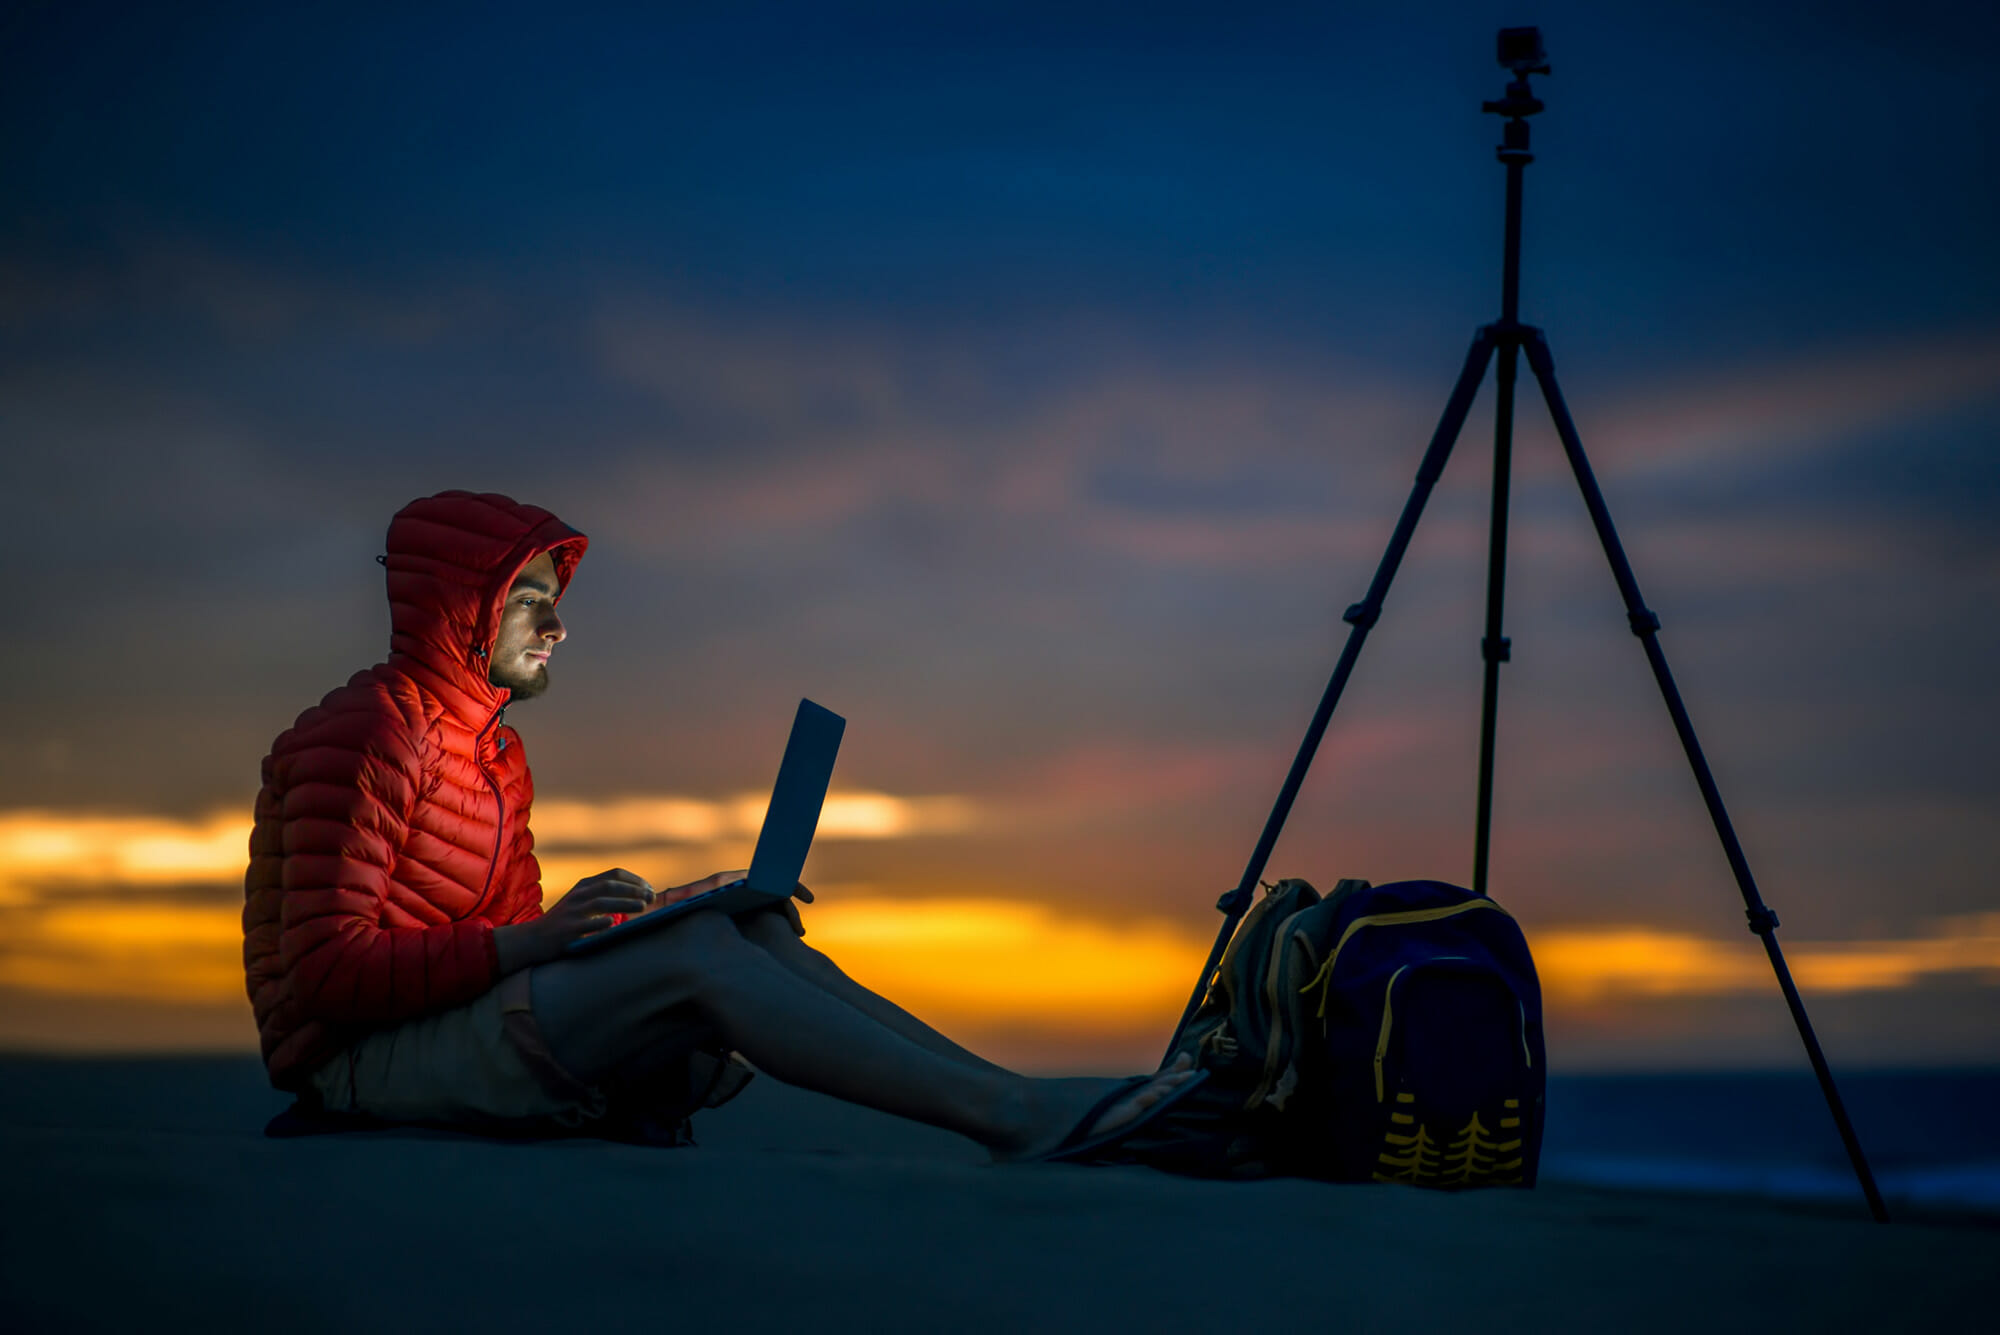 man sat in red jacket editing pictures on laptop night time sunset with tripod